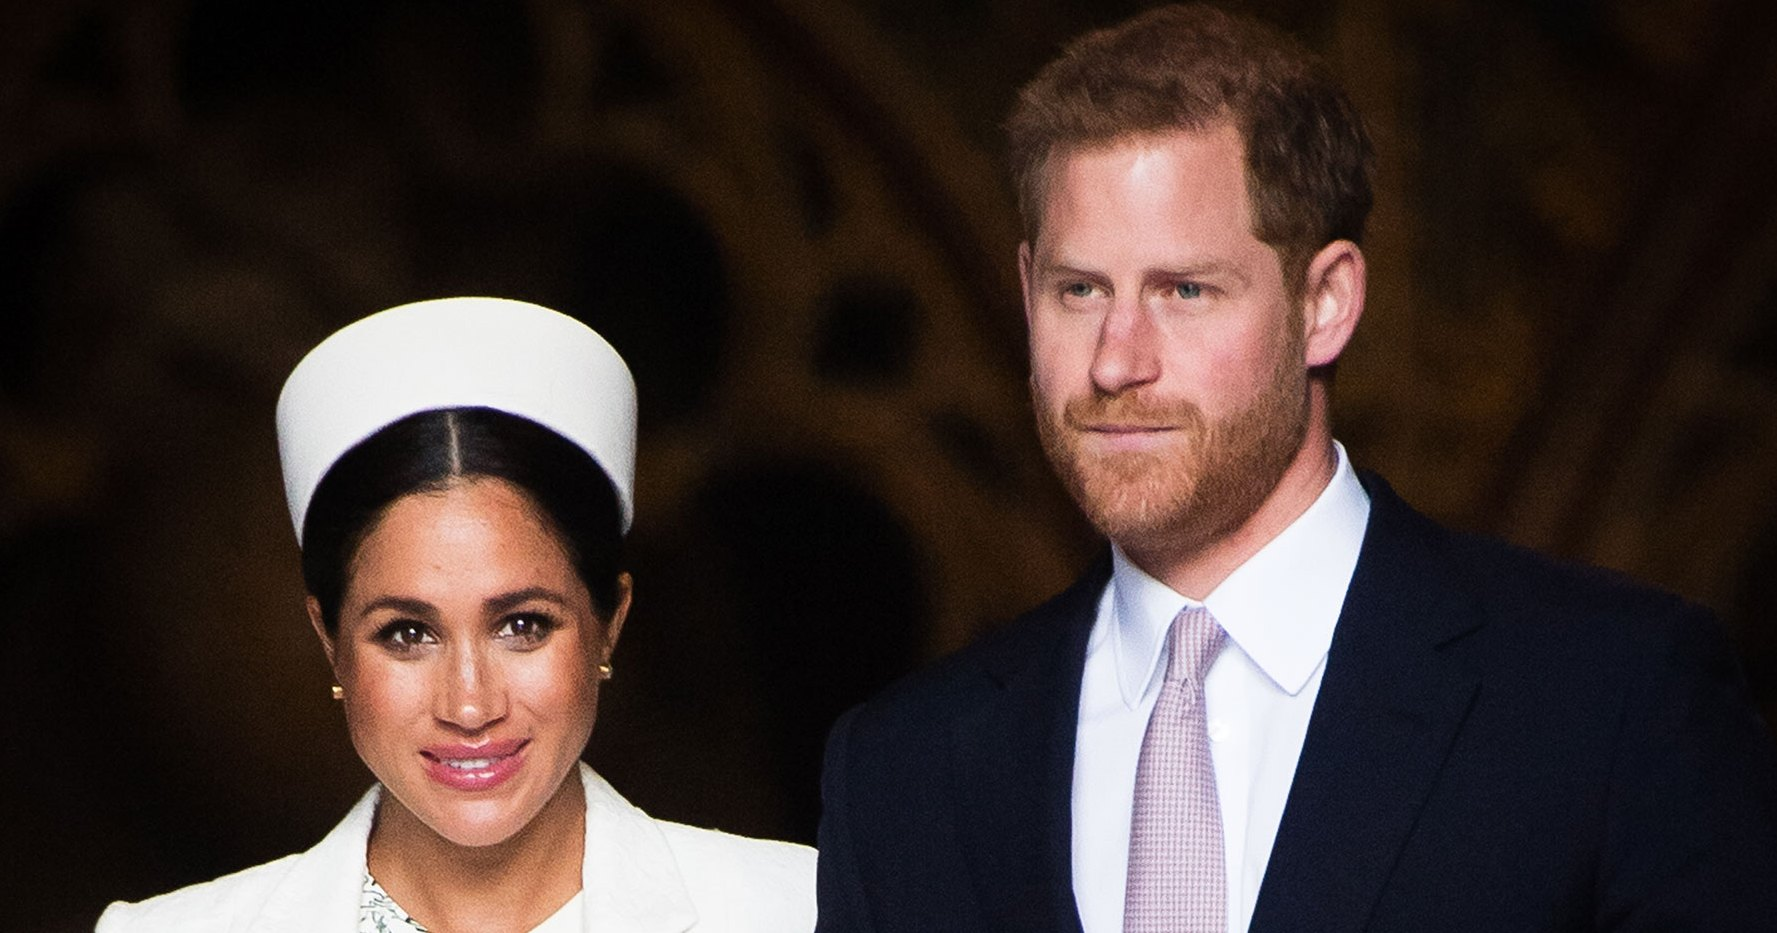 Was Harry, Meghan's Royal Baby's Name Accidentally Revealed?